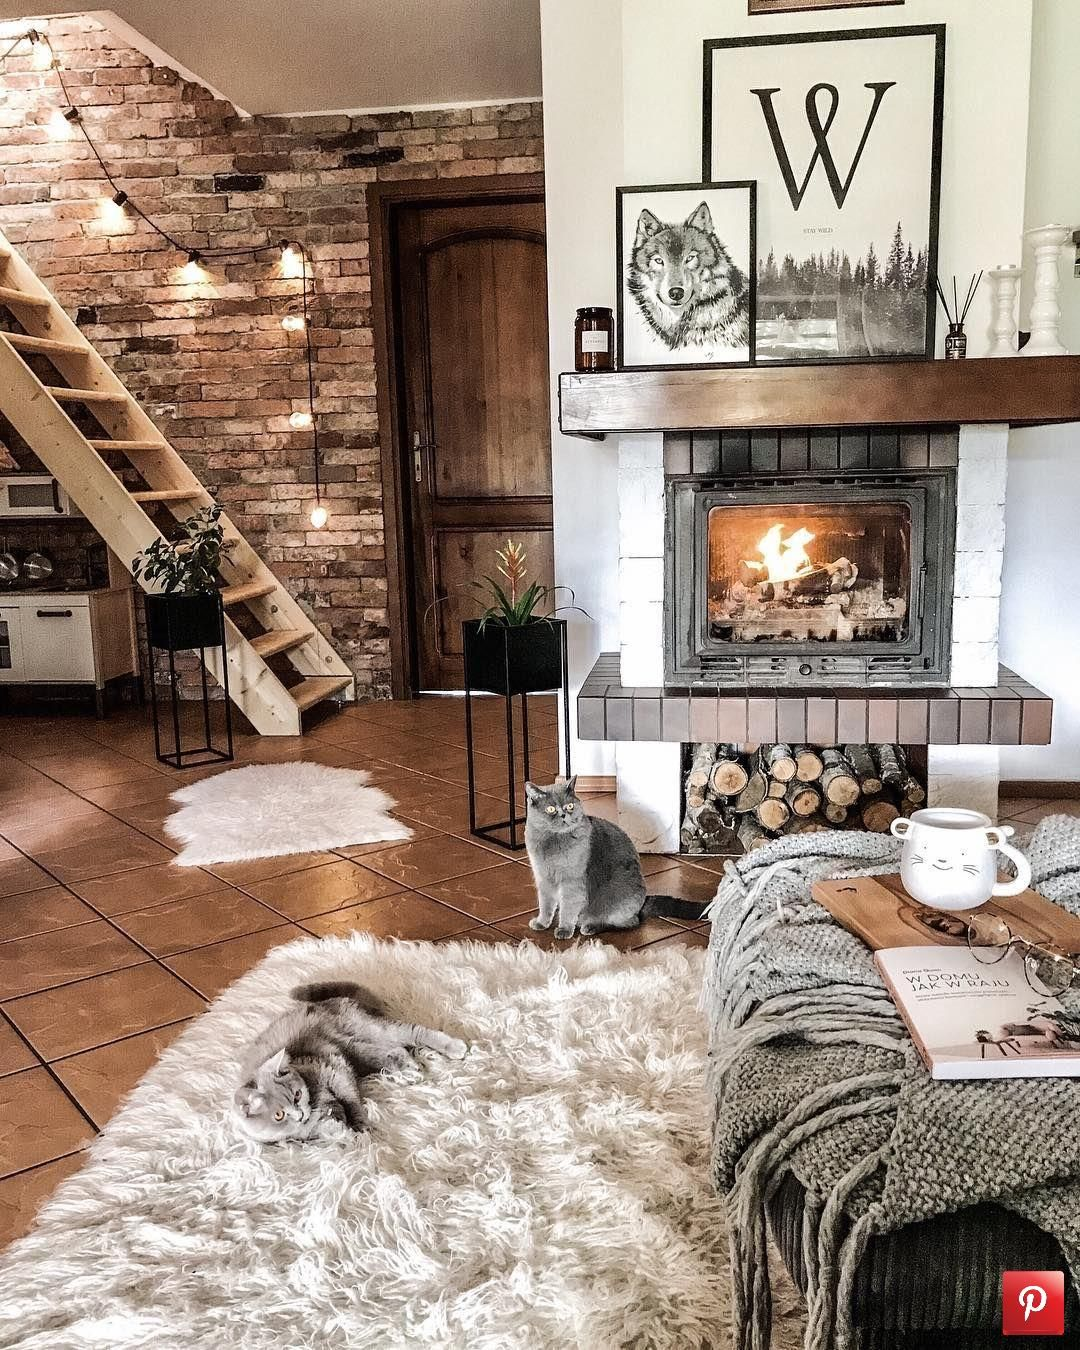 Beautiful and warm living room Check out desigedecors.com to get more inspiration #interiordesign #cozyplace #rustic #homedecor